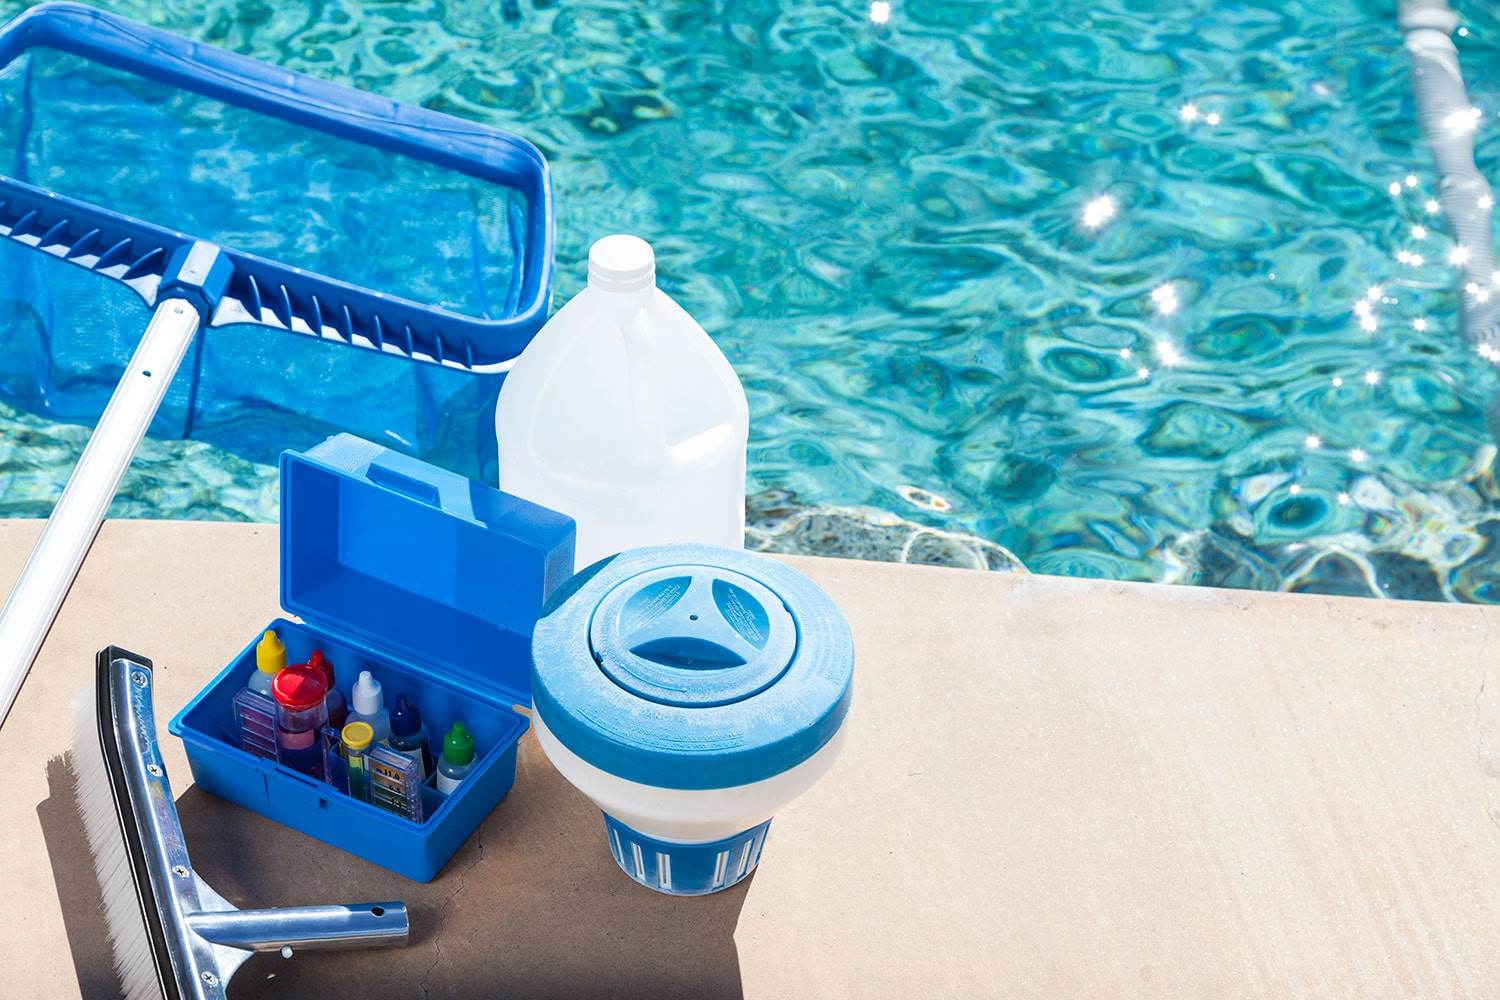 Equipment for testing the quality of pool water and cleaning a pool.